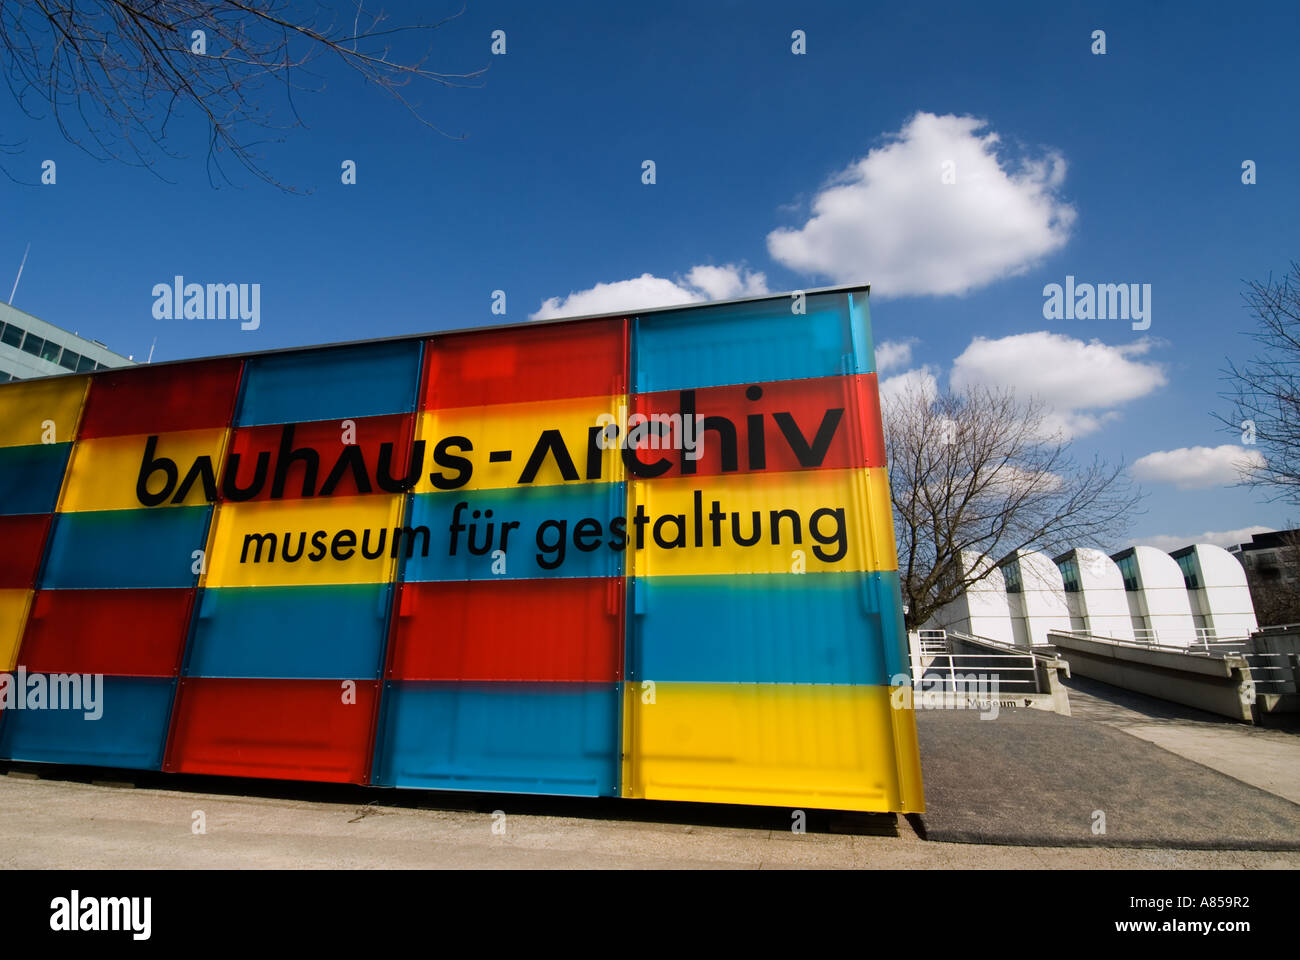 Entrance to Bauhaus Archive Museum in Berlin Germany - Stock Image